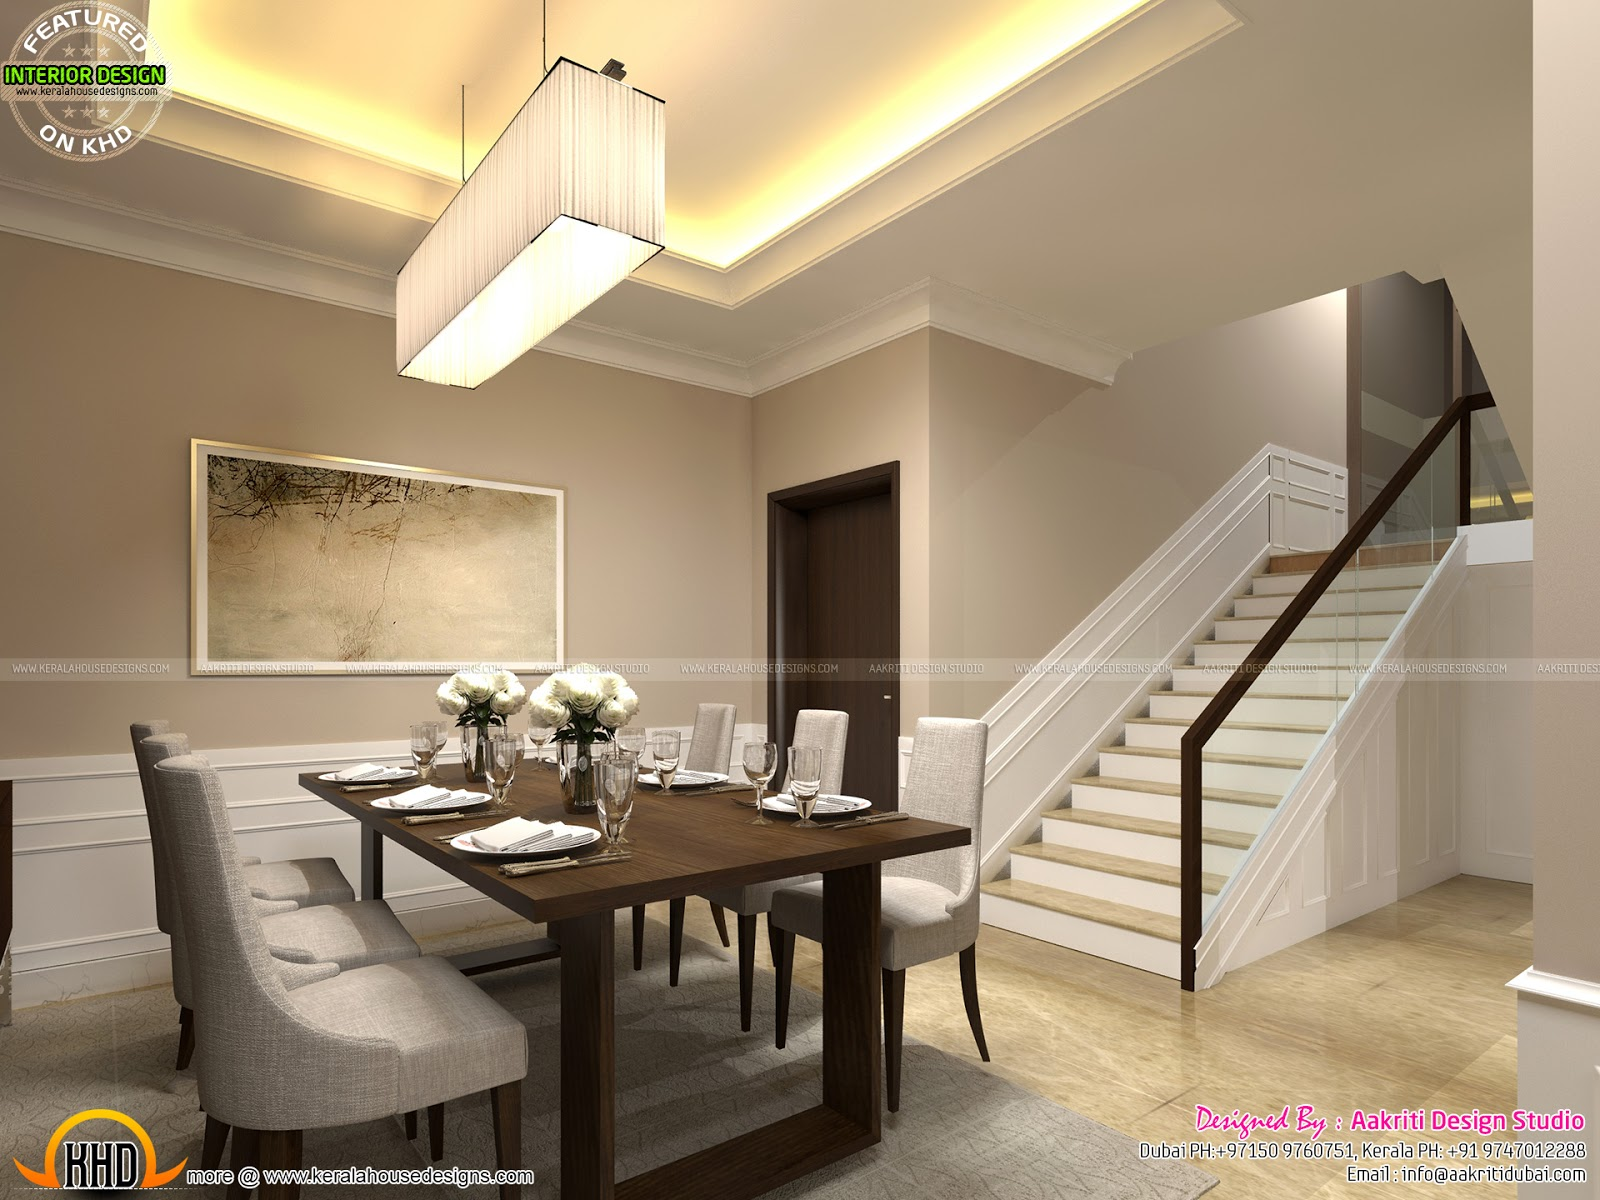 Classic style interior design for living room stair area for Dining room designs kerala